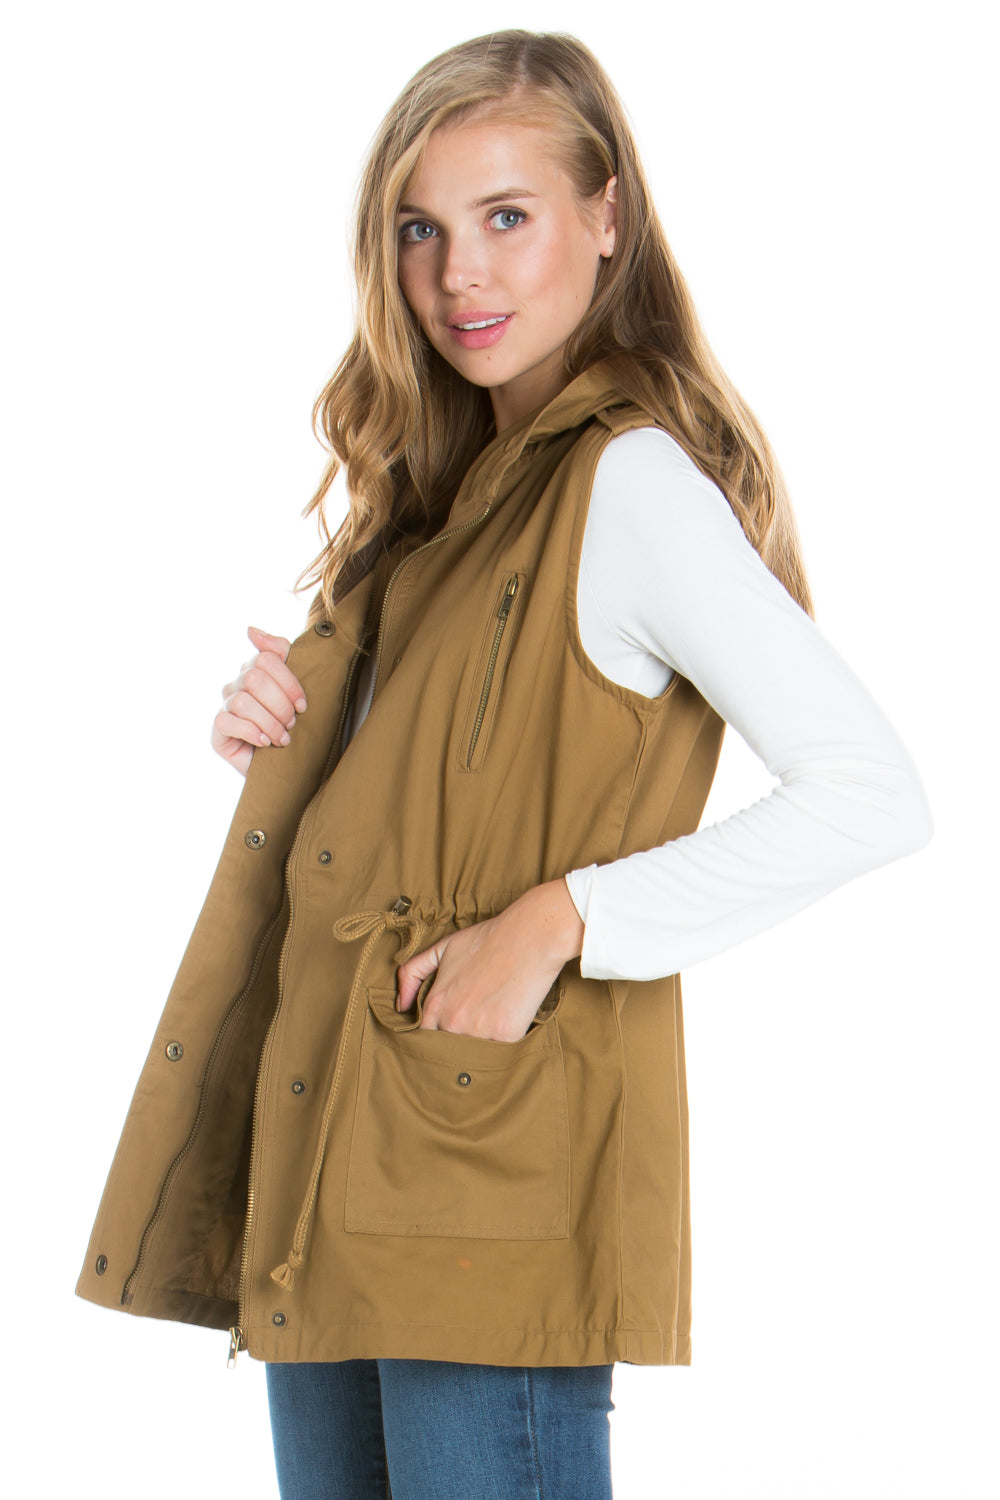 Coffee Anorak Military utility Jacket Vest with Drawstring